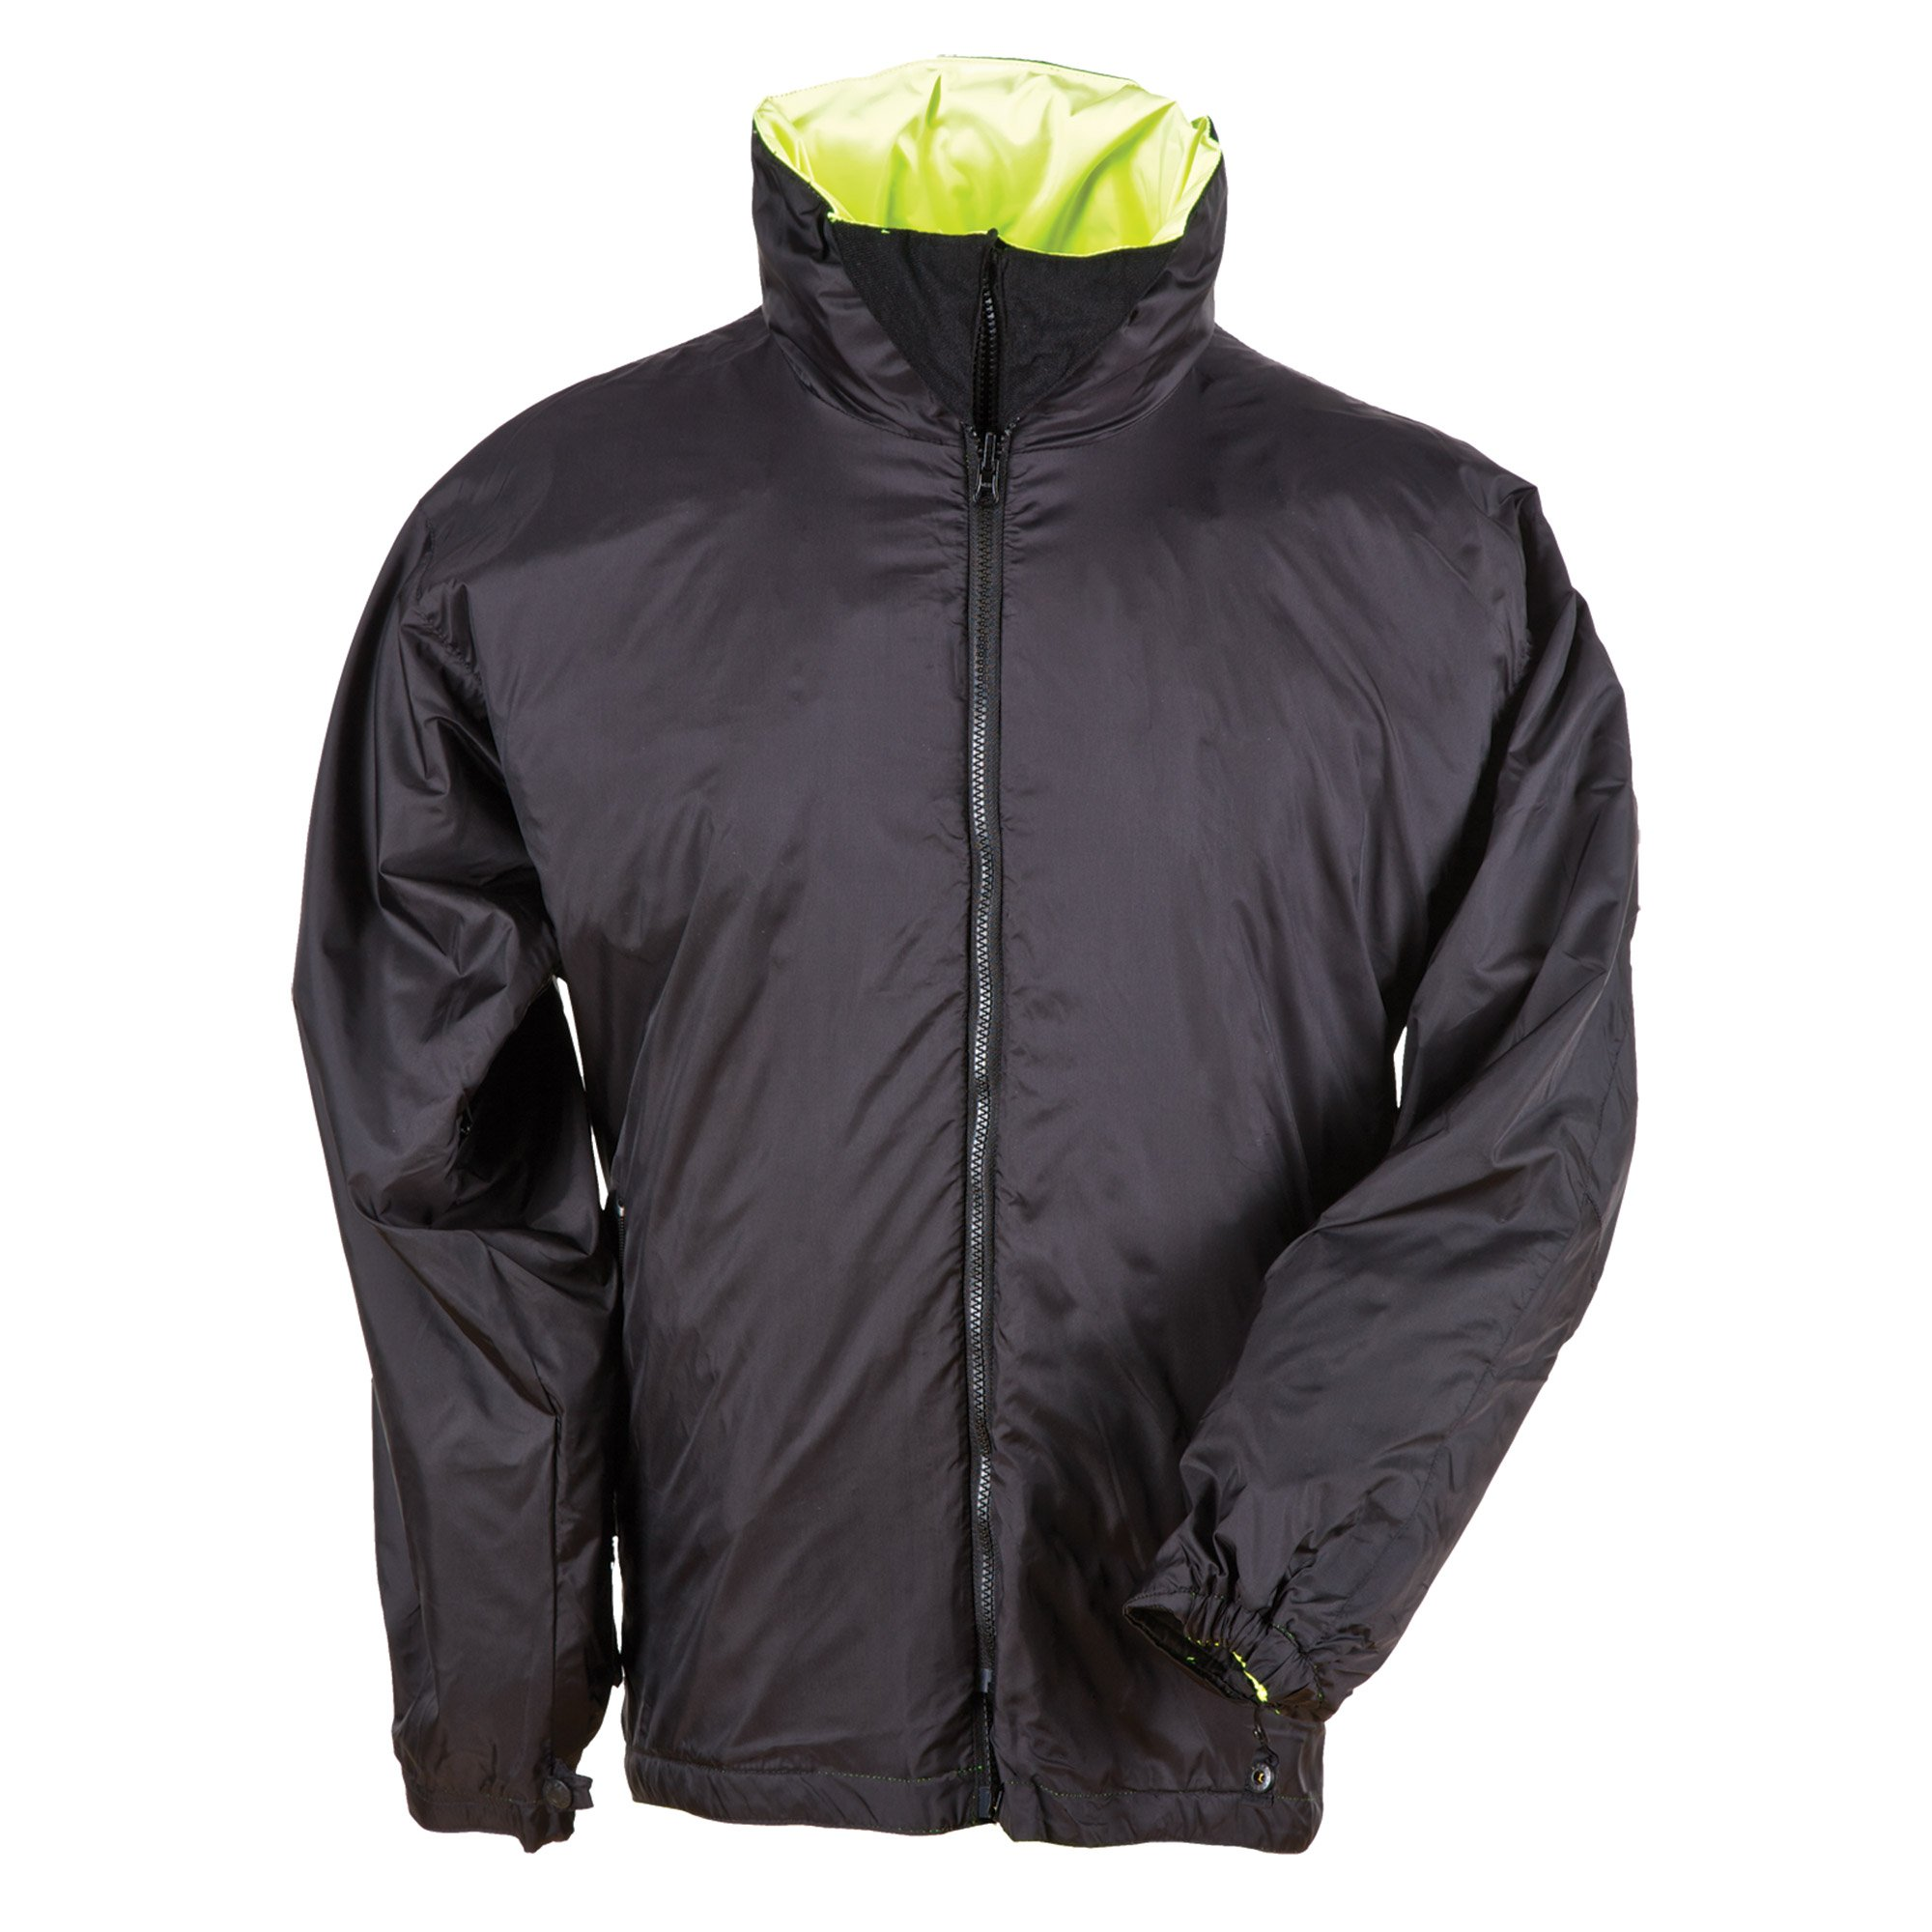 5.11 Tactical 3-in-1 Reversible Parka, High Visibility, 3M Scotchlite Reflective Tape, Style 48033 by 5.11 (Image #2)